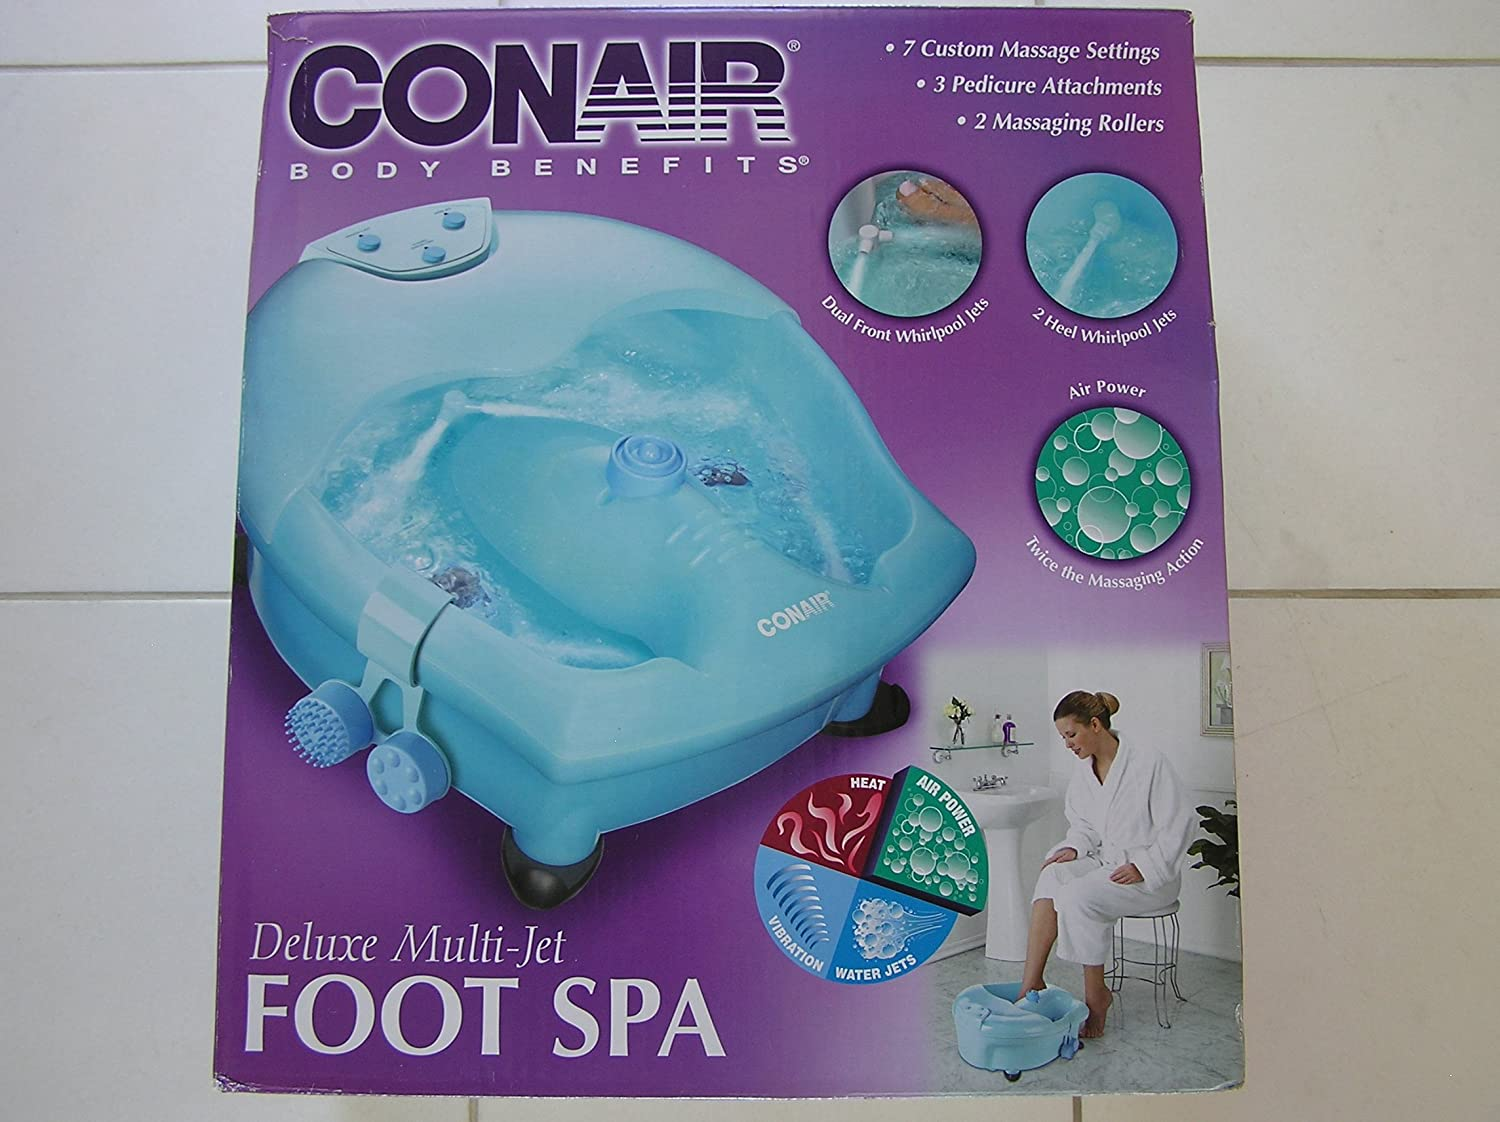 Amazon.com : Conair Body Benefits Deluxe Multi Jet Foot Spa with ...